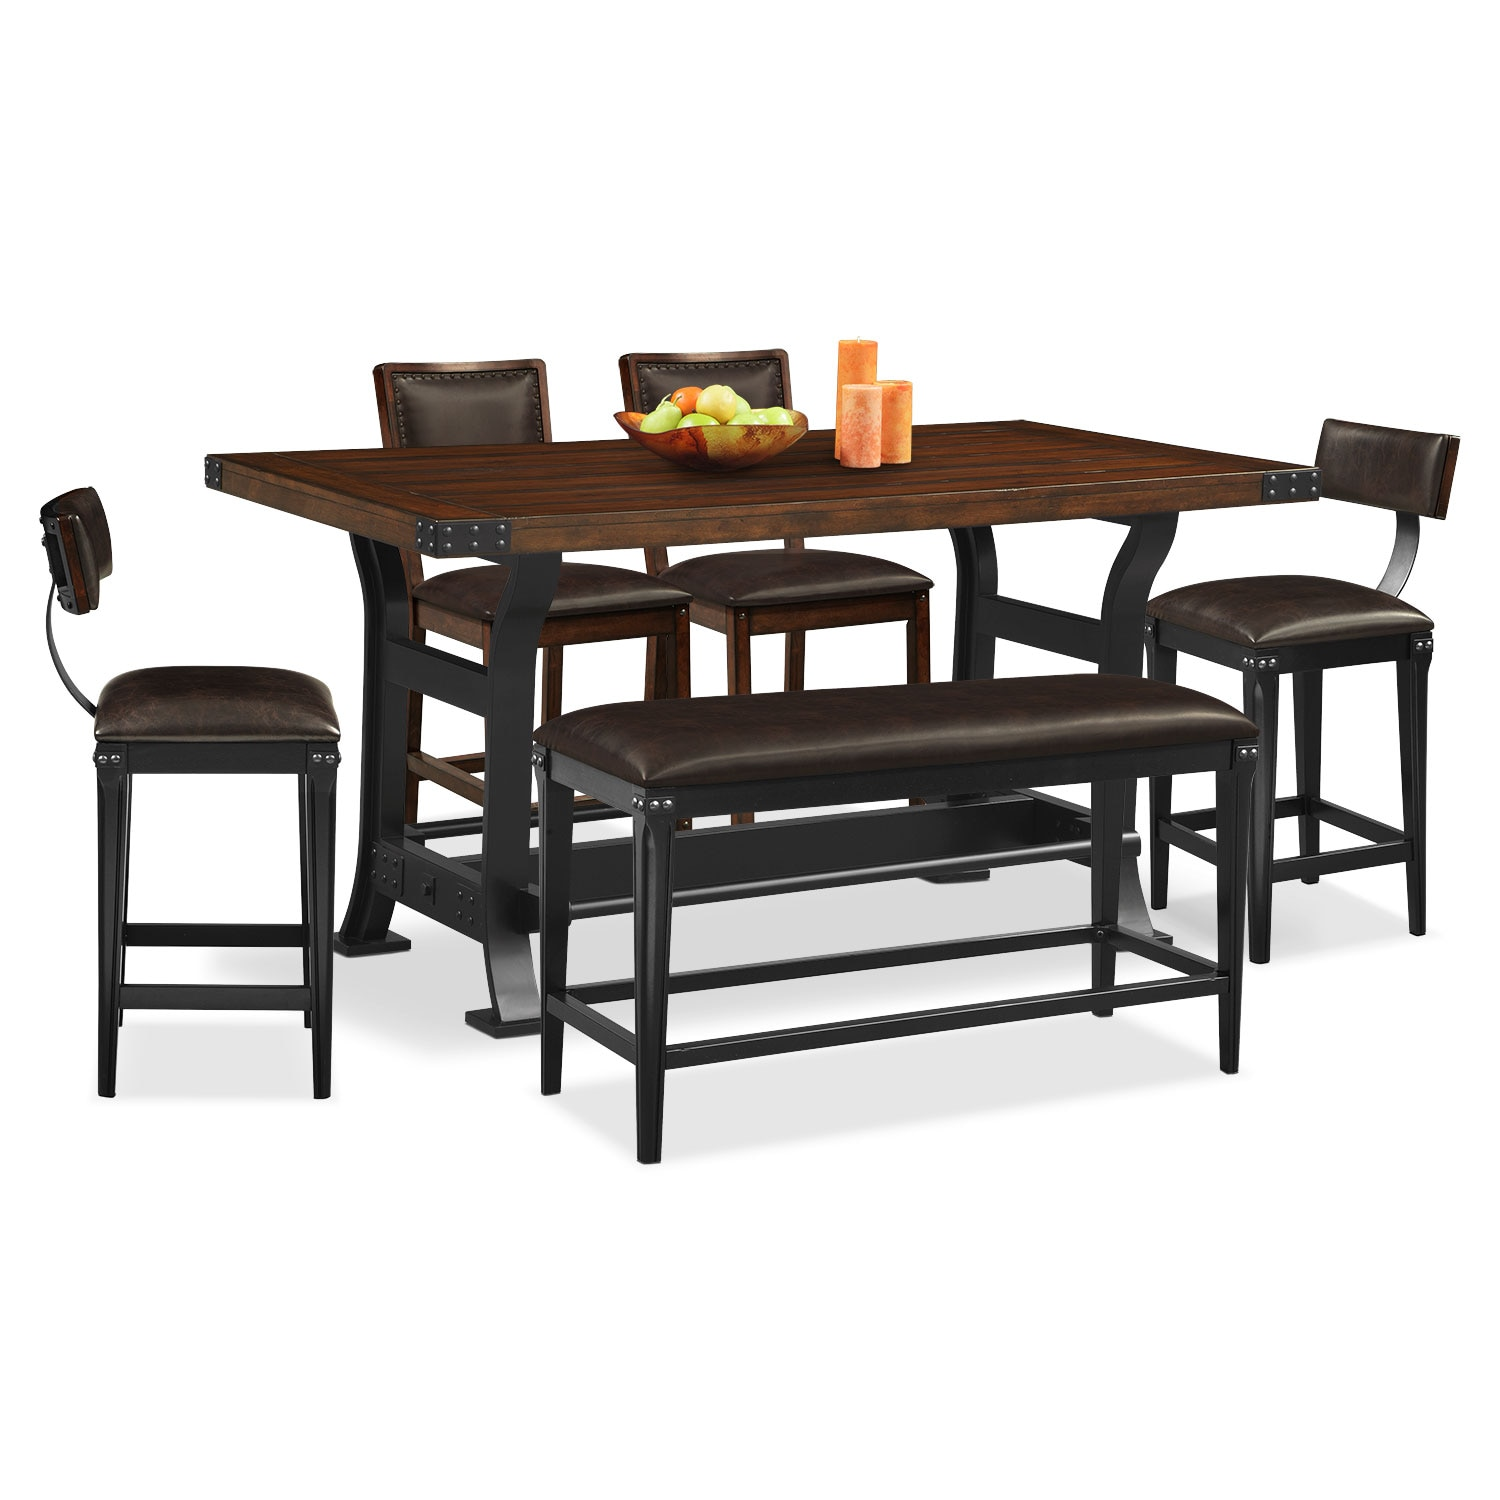 espresso with piece dining nook sets cfm master room set bench product hayneedle layton breakfast